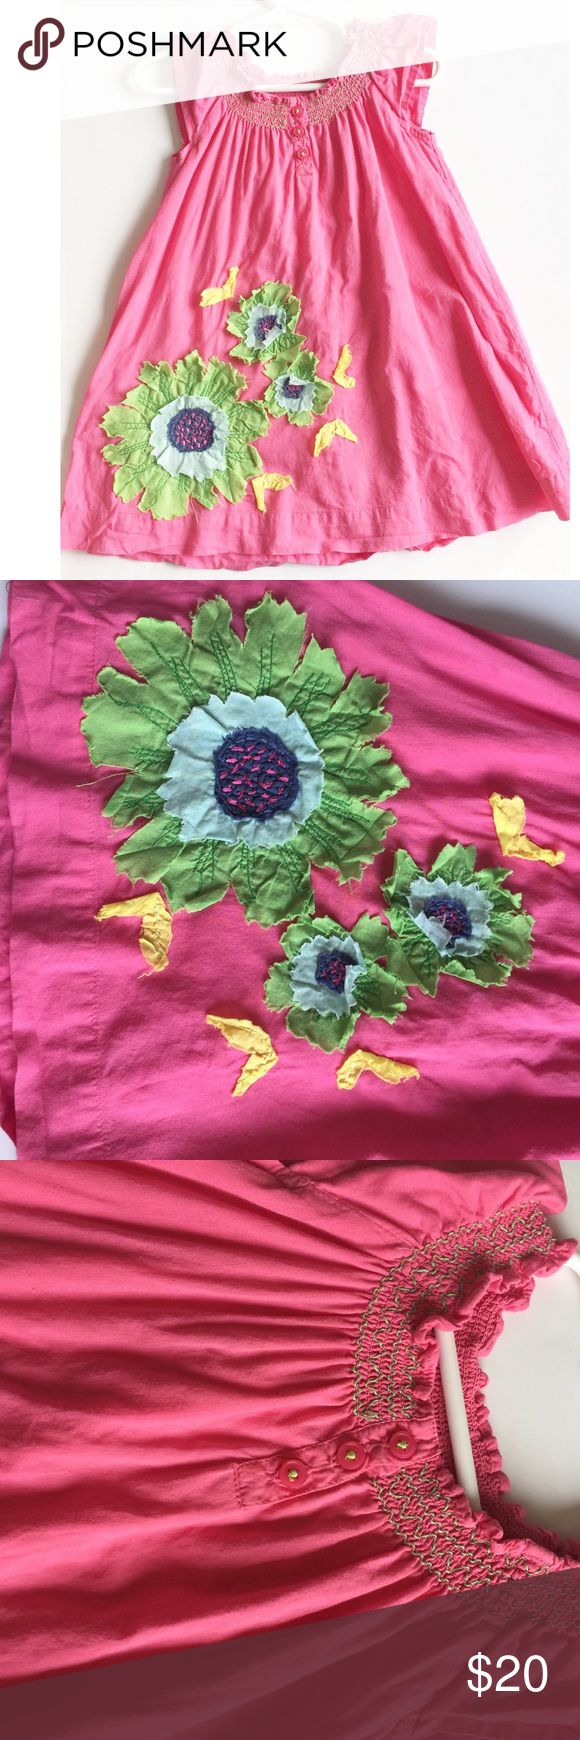 Mini Boden dress Pink smocked floral appliqué fully lined buttons in back dress Mini Boden Dresses Casual